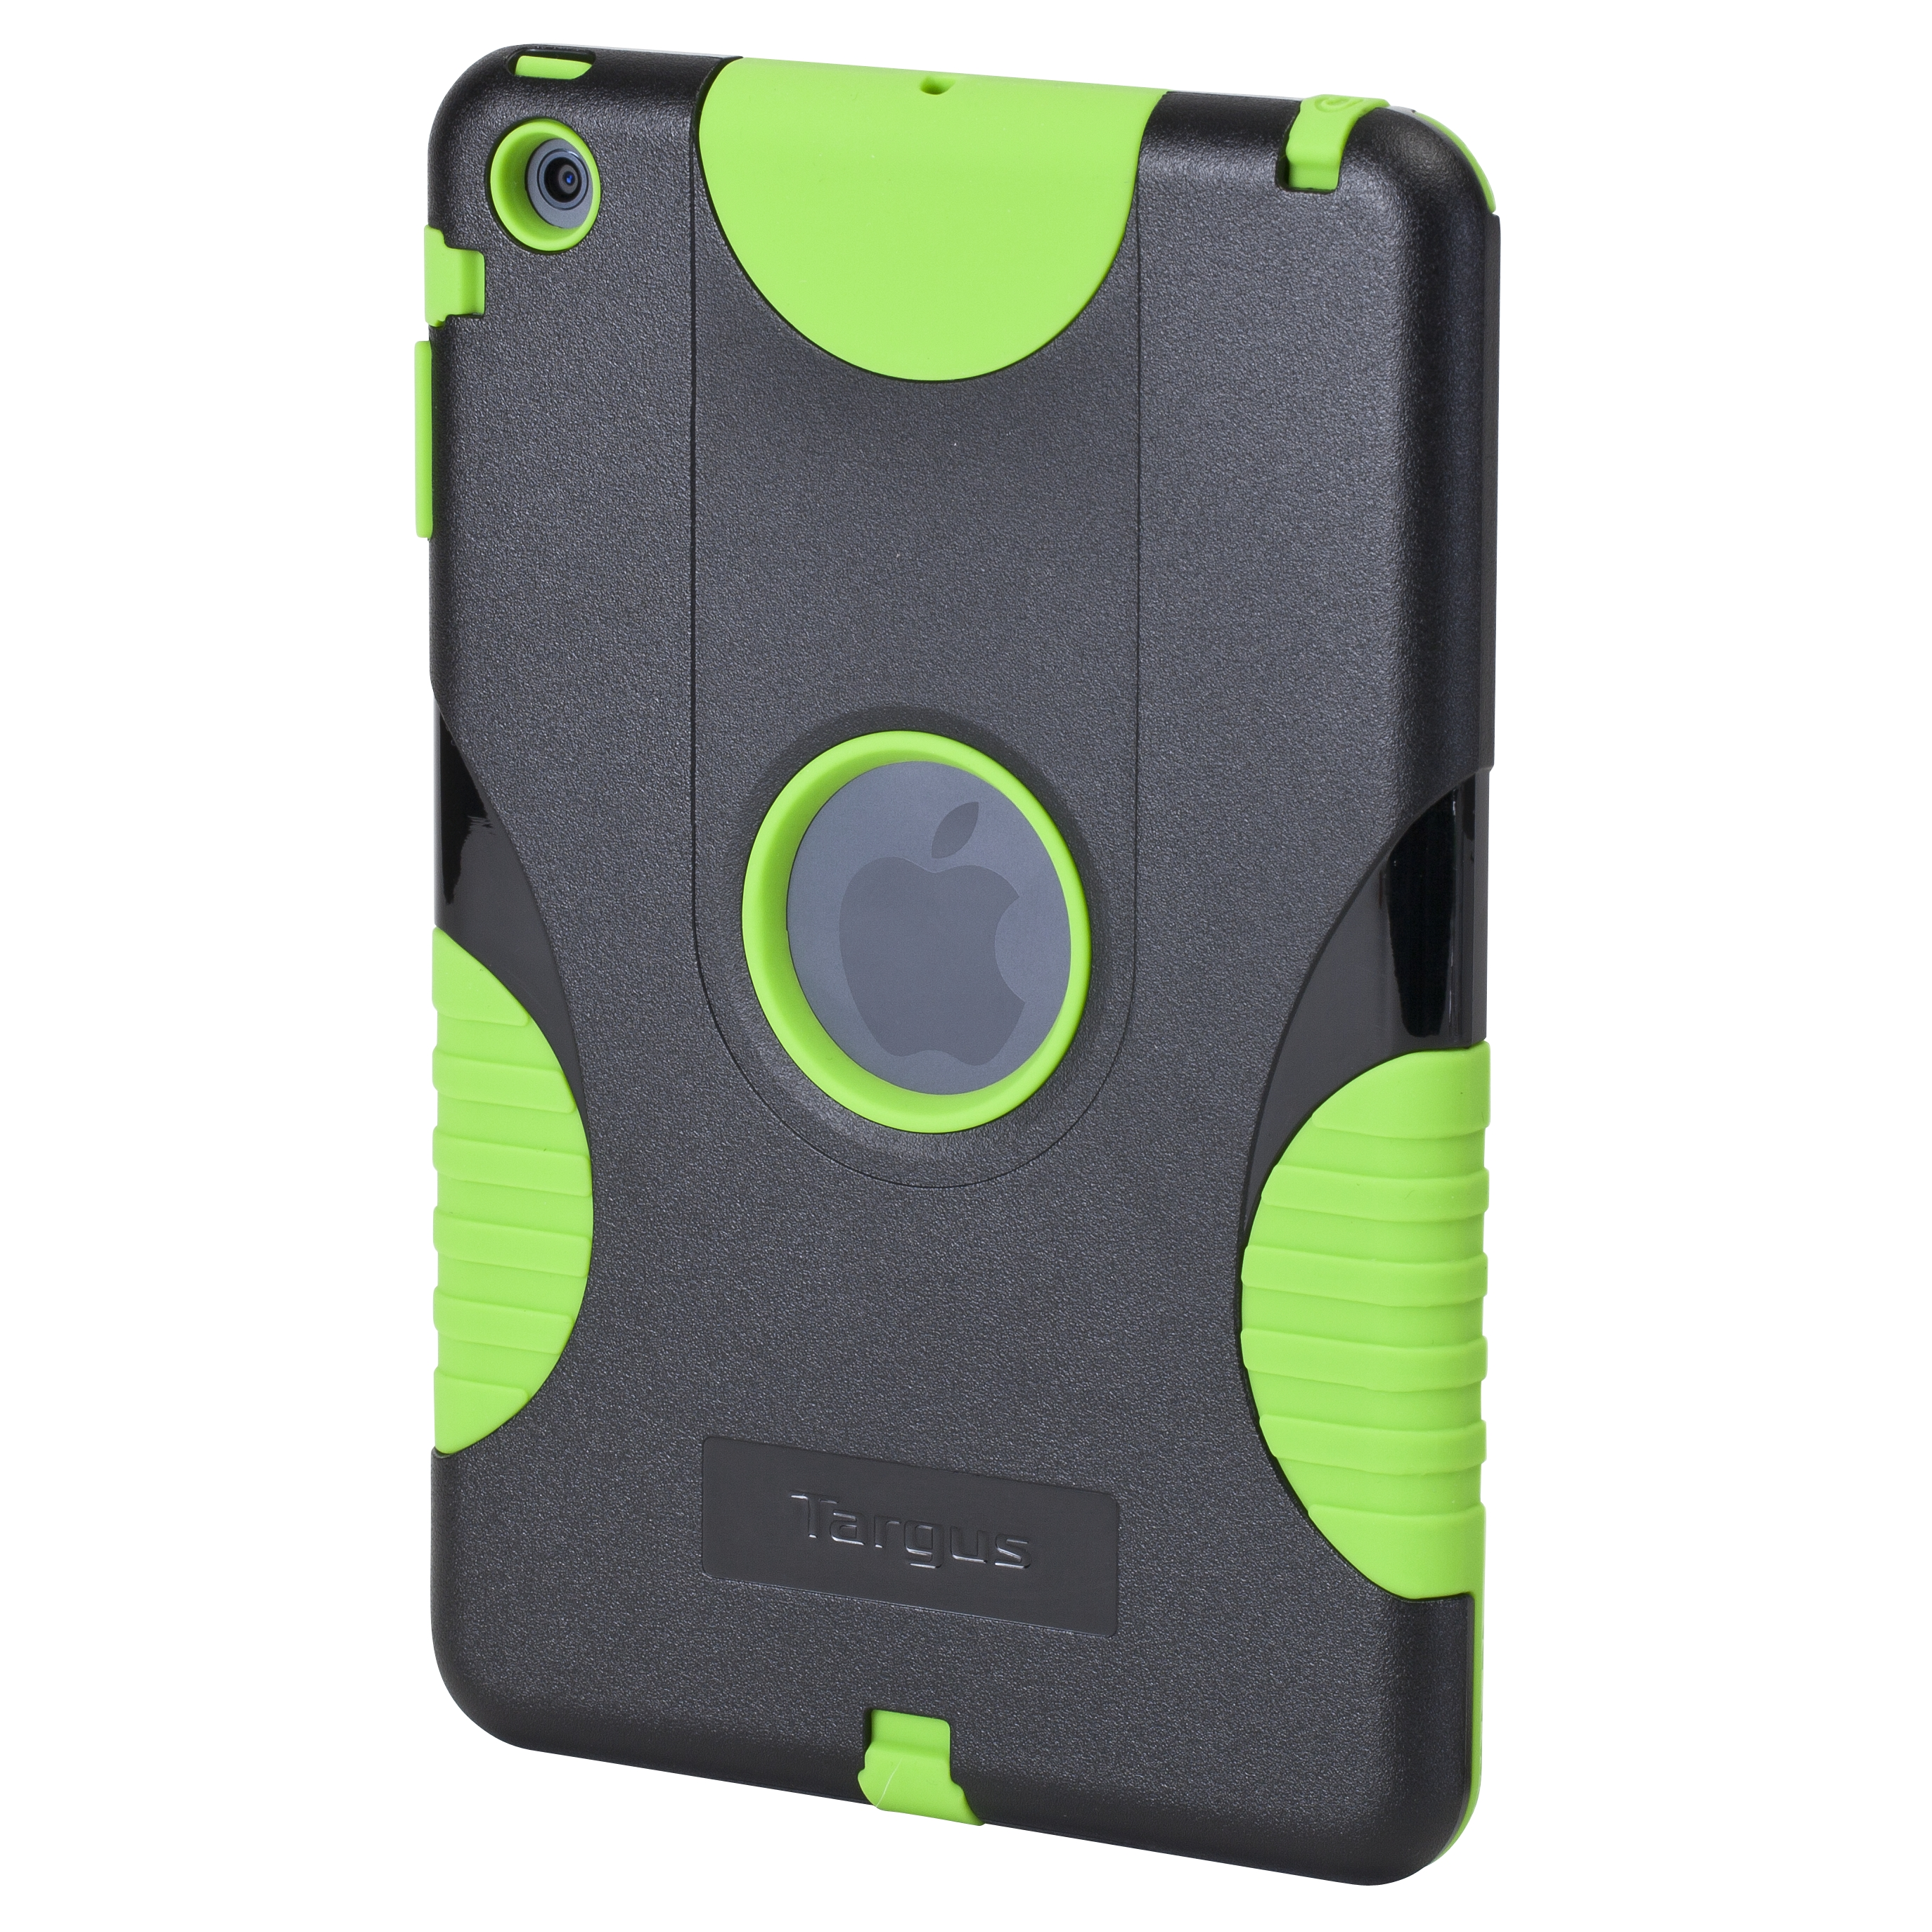 Safeport Rugged Case For Ipad Mini Thd04705us Green Tablet Cases Targus